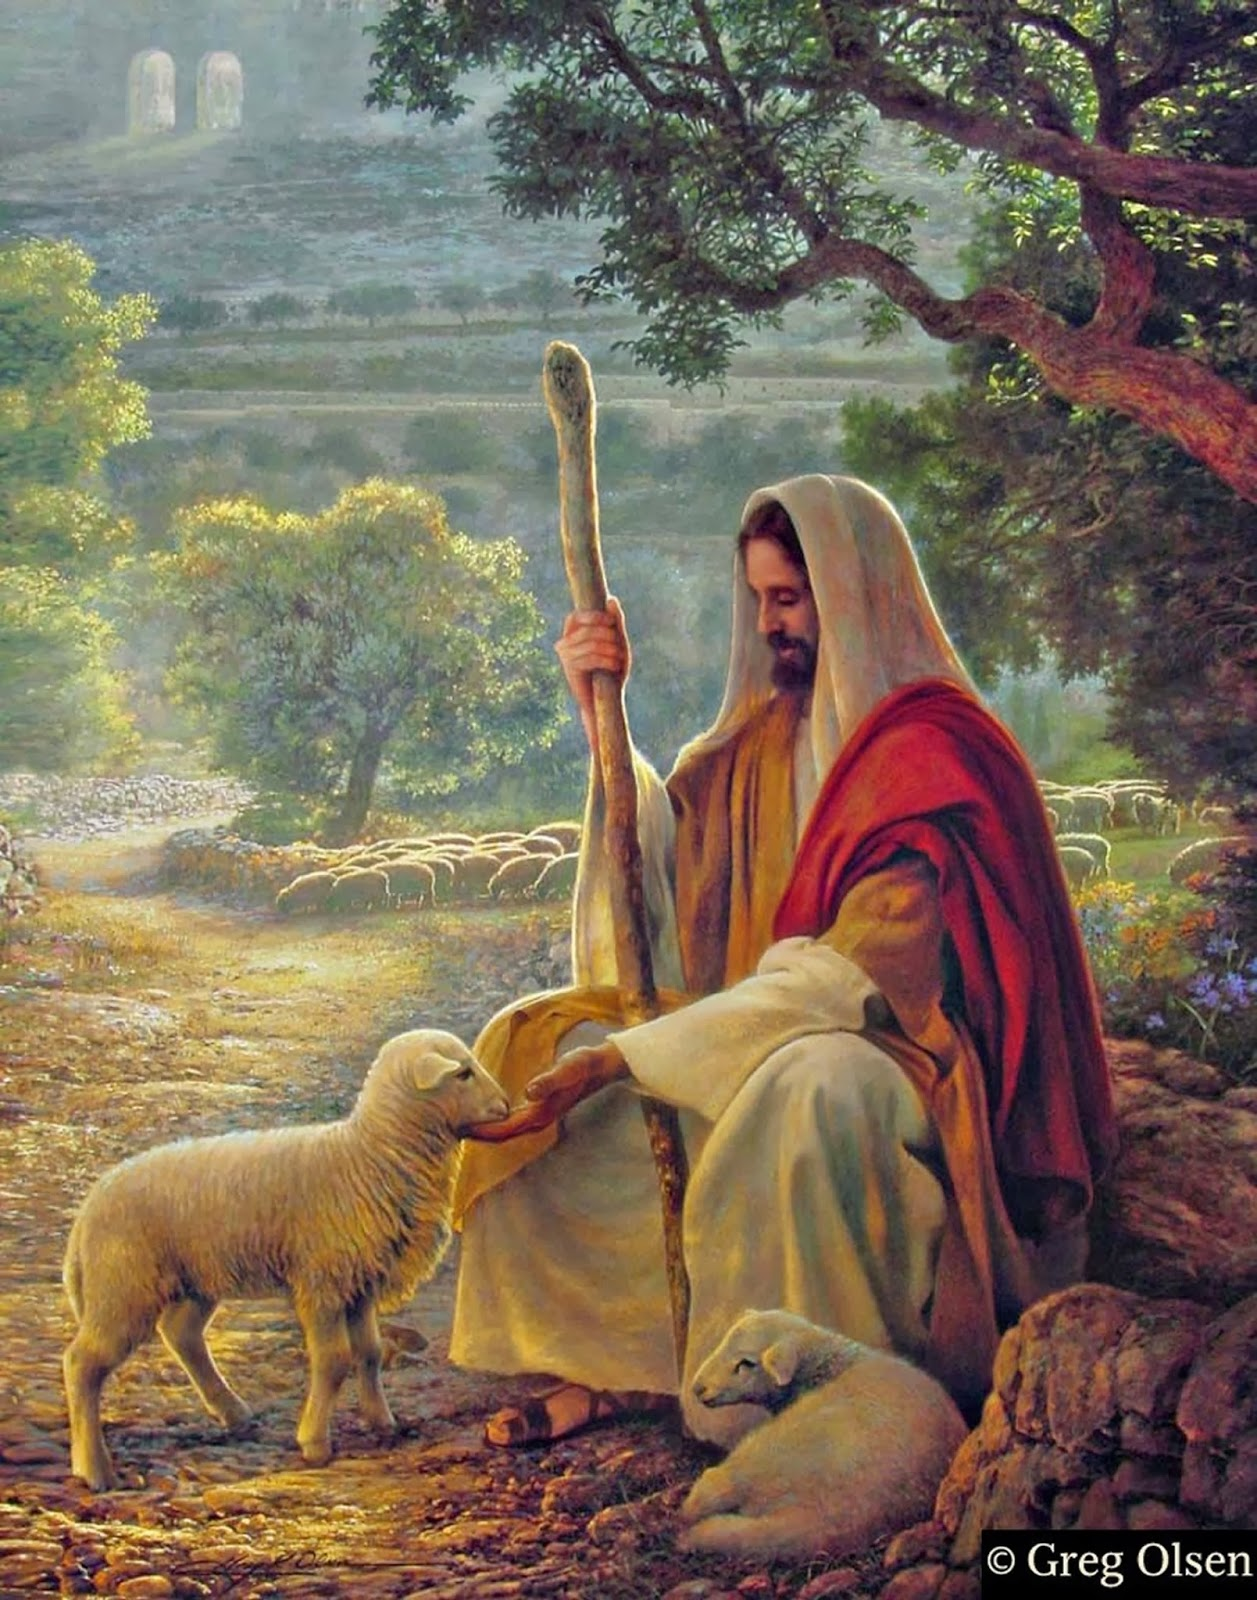 The Lord is my shepherd, I lack nothing.